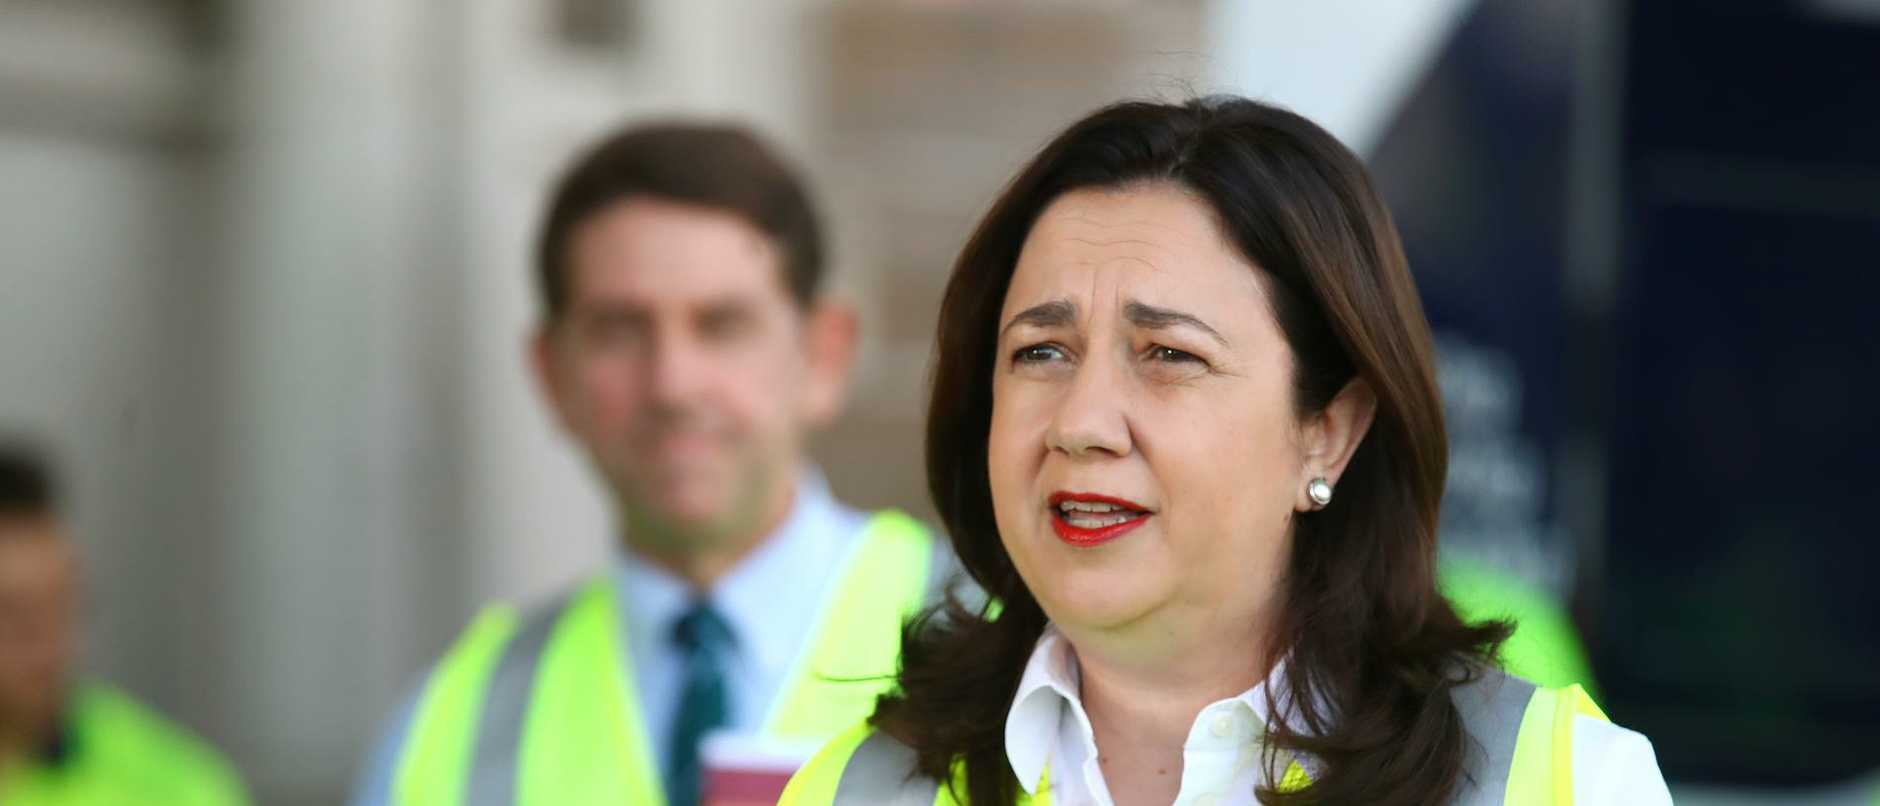 Queensland Premier Annastacia Palaszczuk Holds Press Conference As State Election Campaign Begins